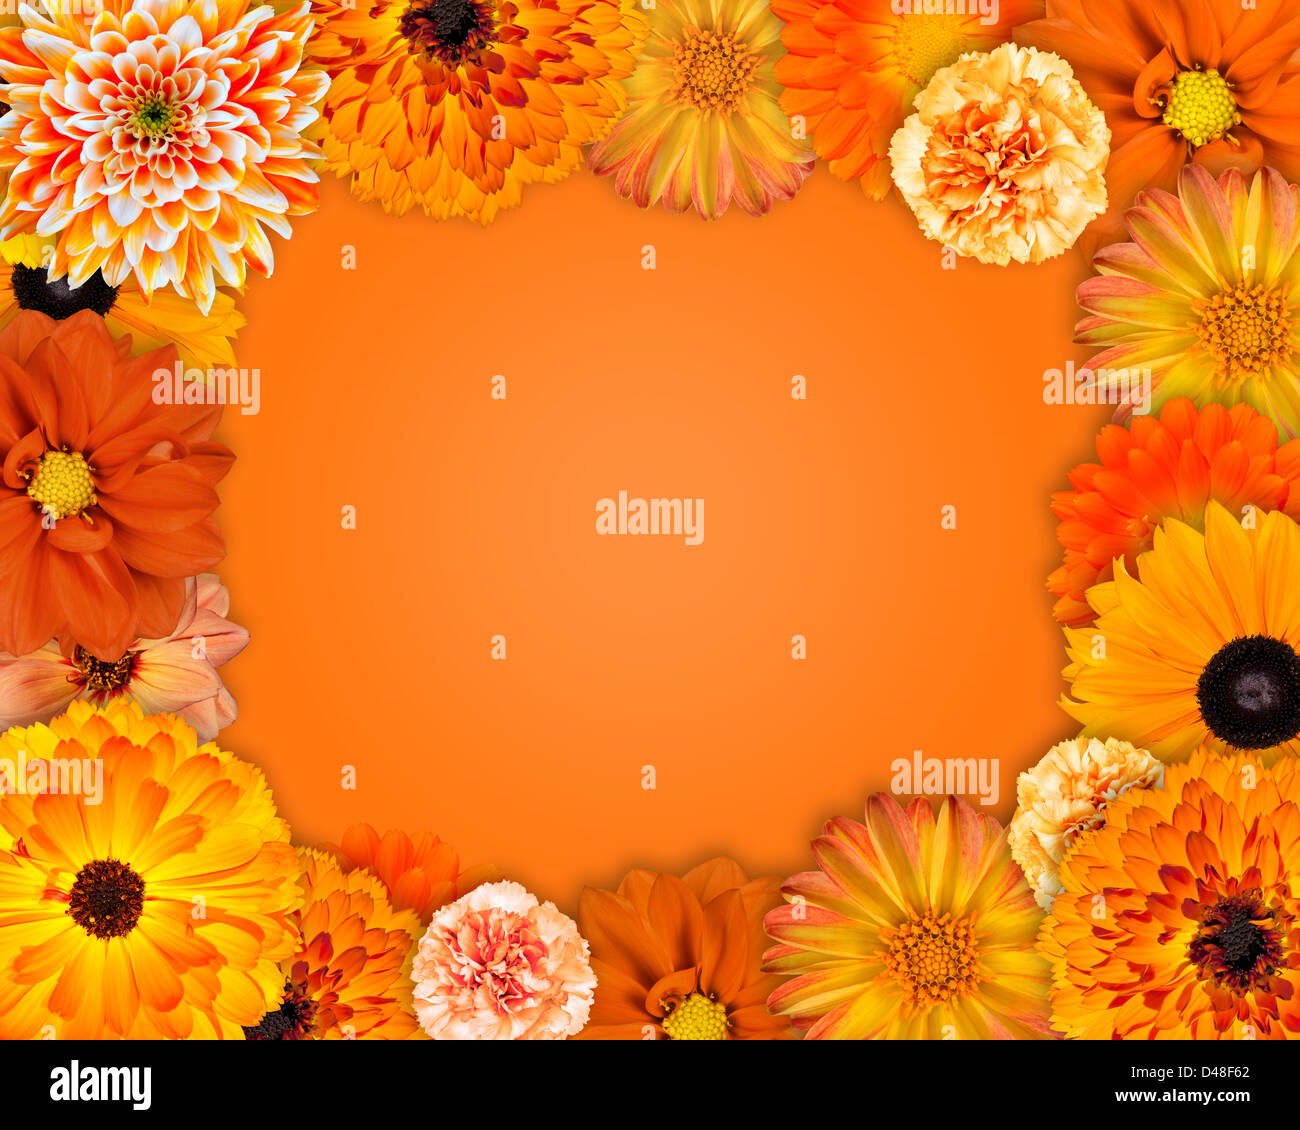 Flower Frame With Orange Flowers Isolated On Orange